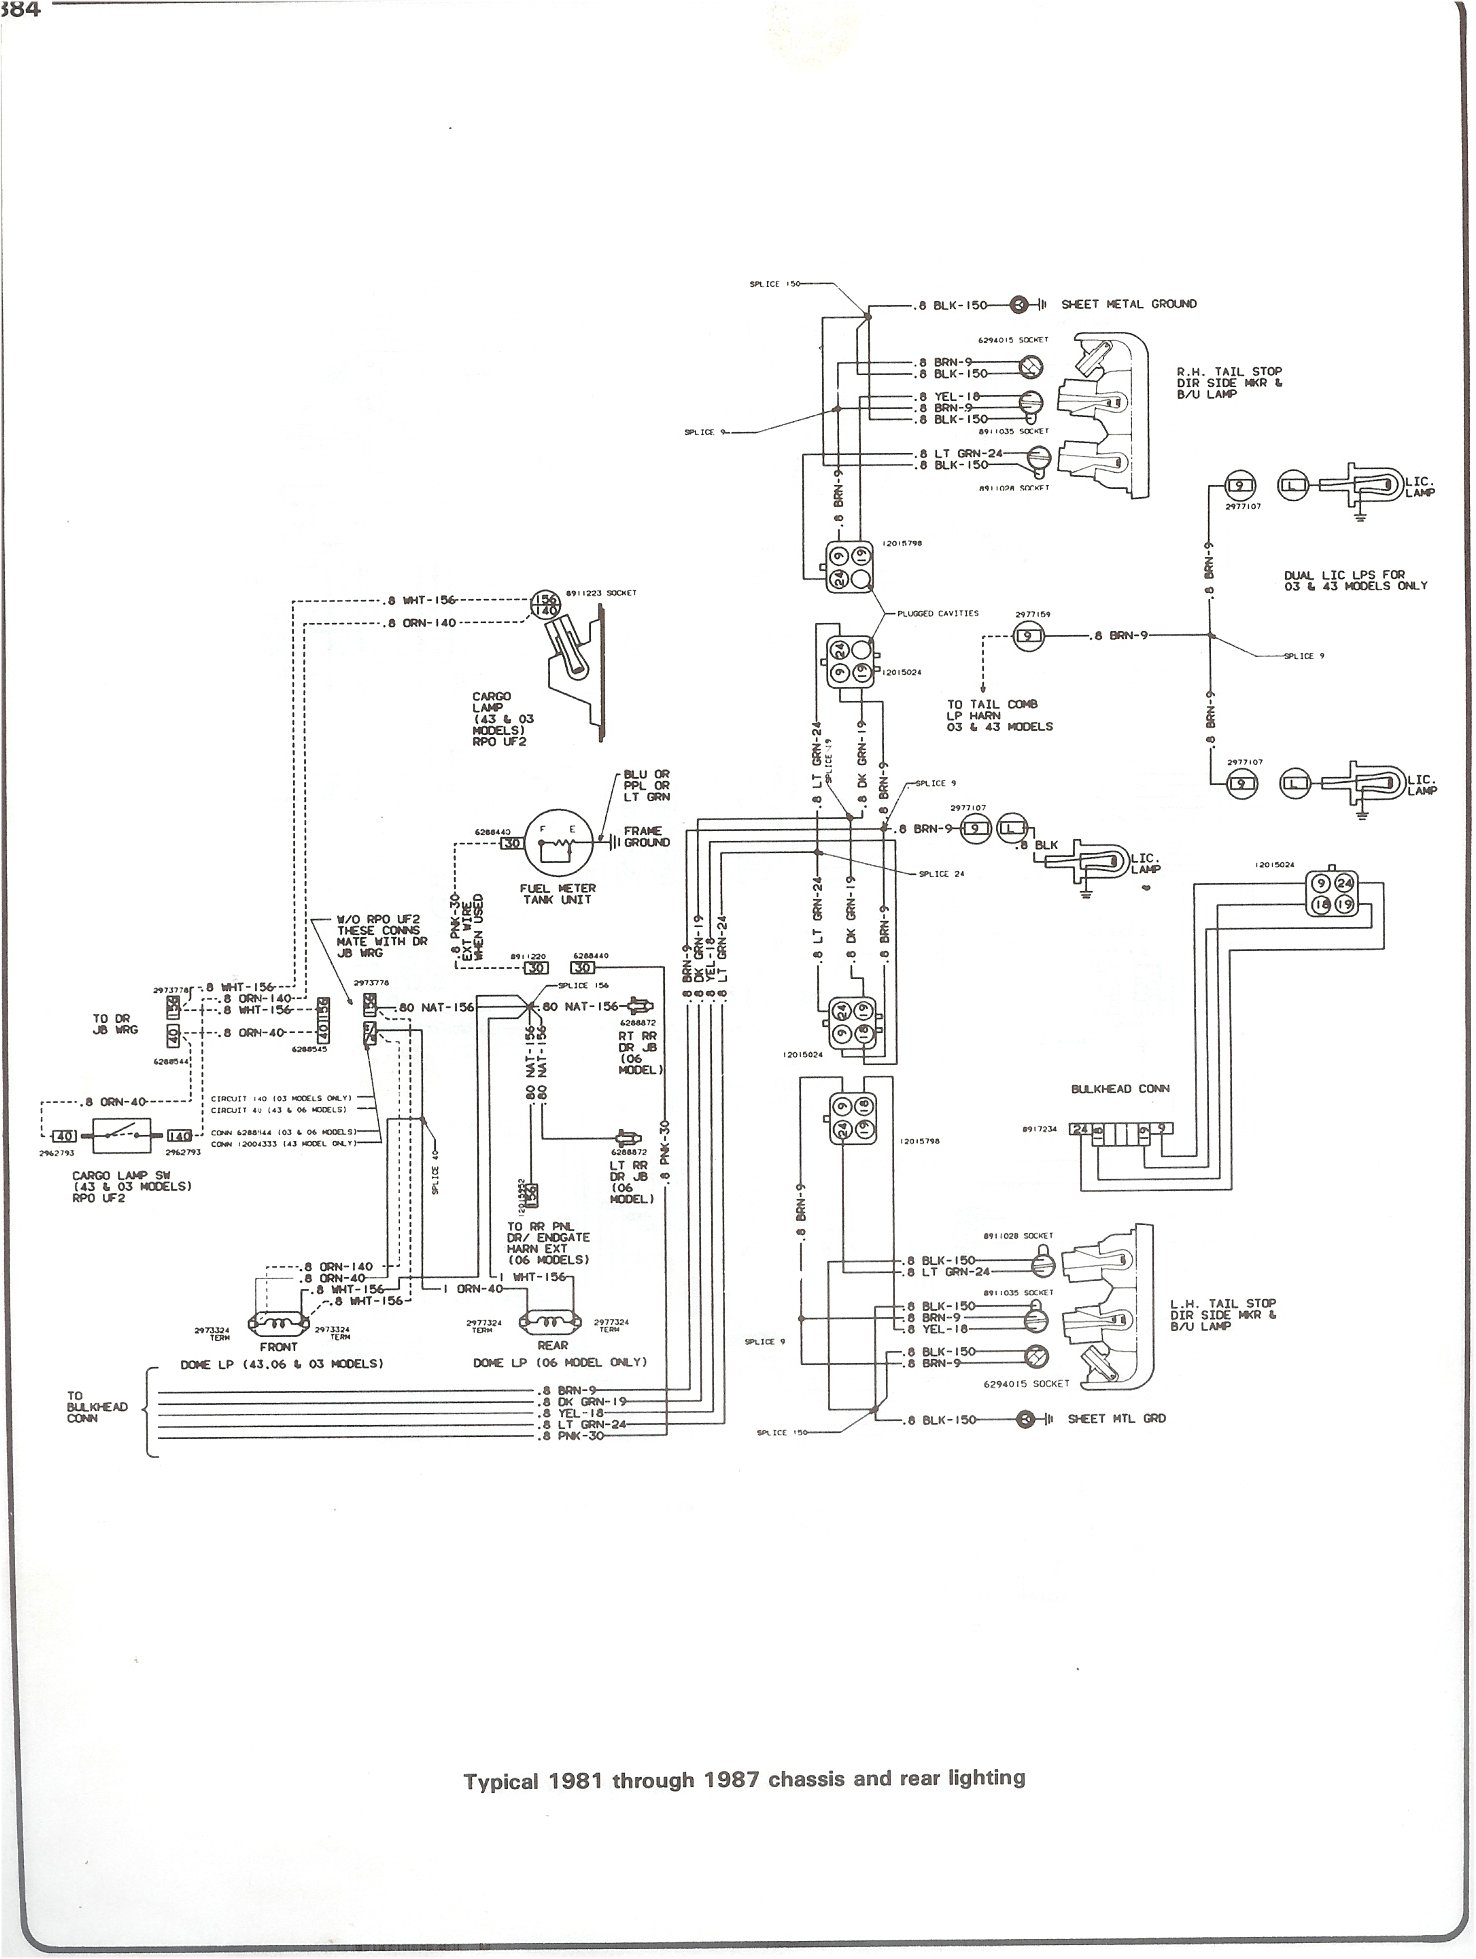 Dodge 78 318 Ci Ignition Wiring Diagram Libraries 1985 Truck Librarychevy Silverado Drawing At Getdrawings Com Free For